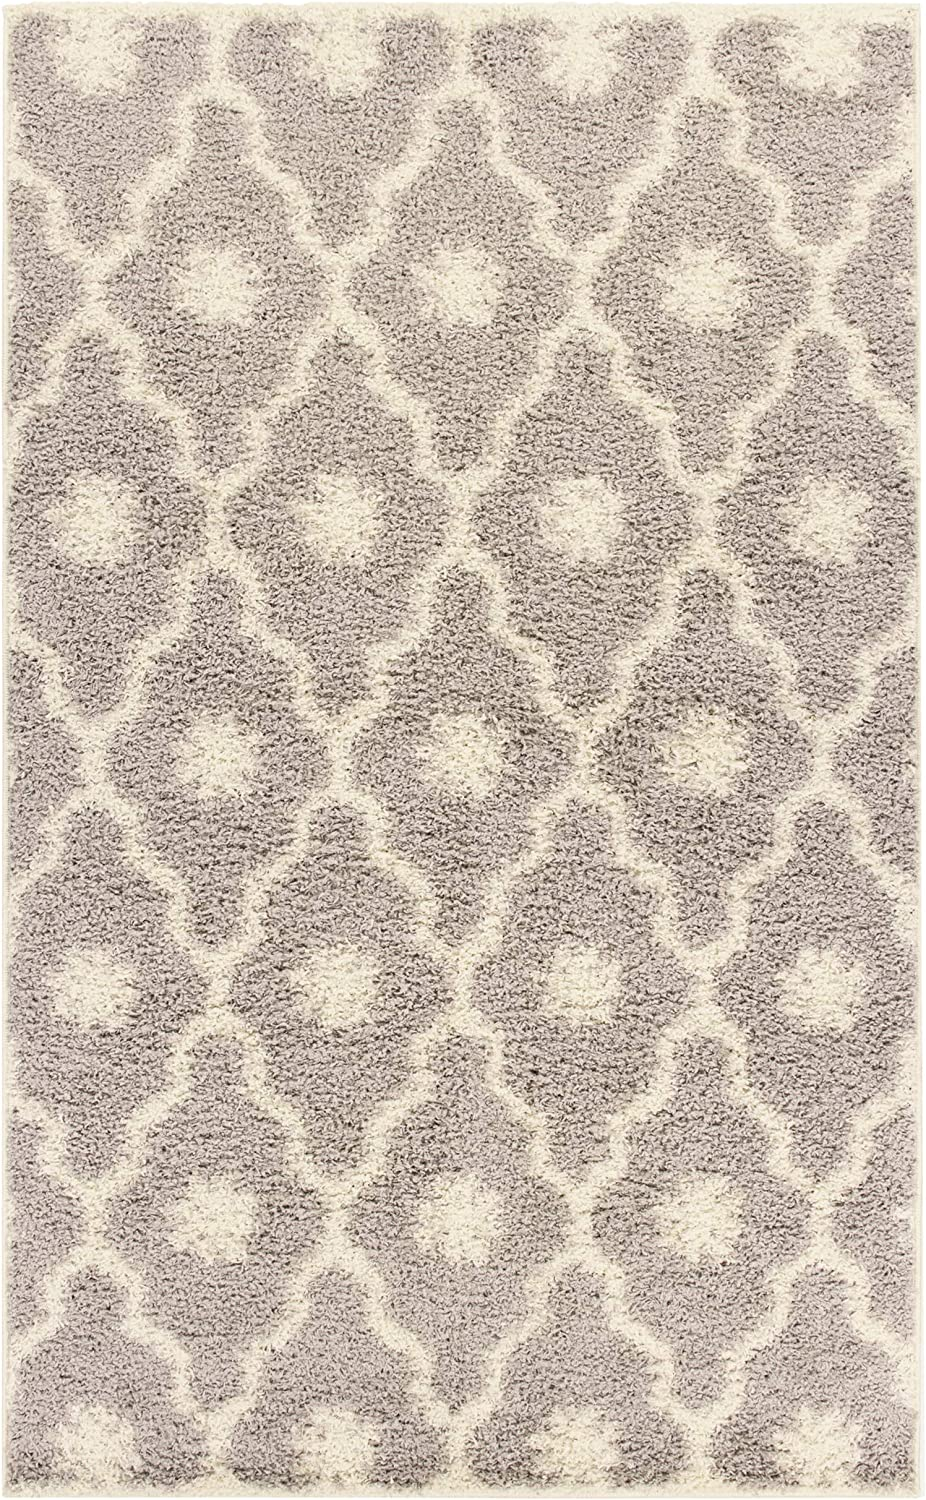 Boston Mall SUPERIOR Tufted Shag Special price Modern Plush Indoor Rug Trellis Collection